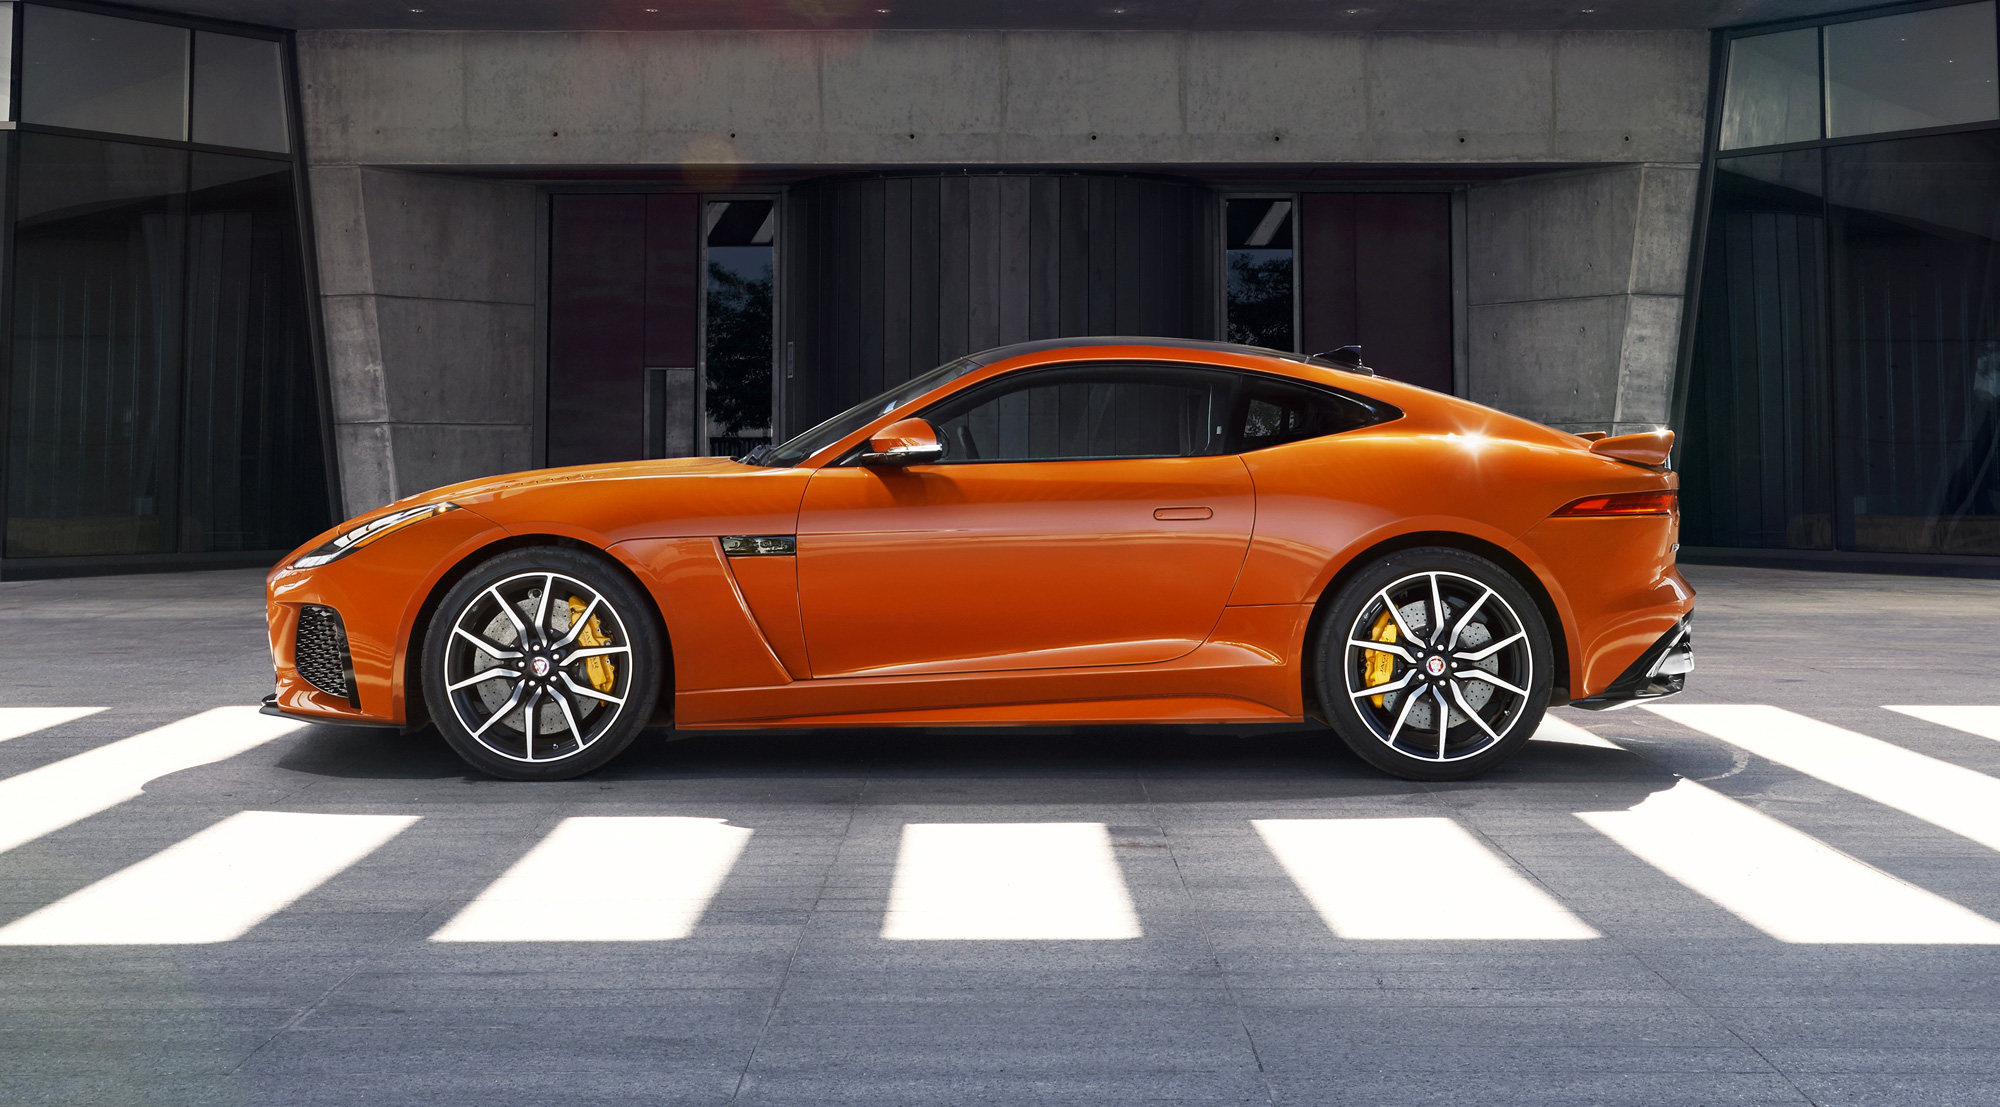 F Type Coupe >> The F-Type SVR – Jaguar's All-Weather Supercar - Luxurious ...